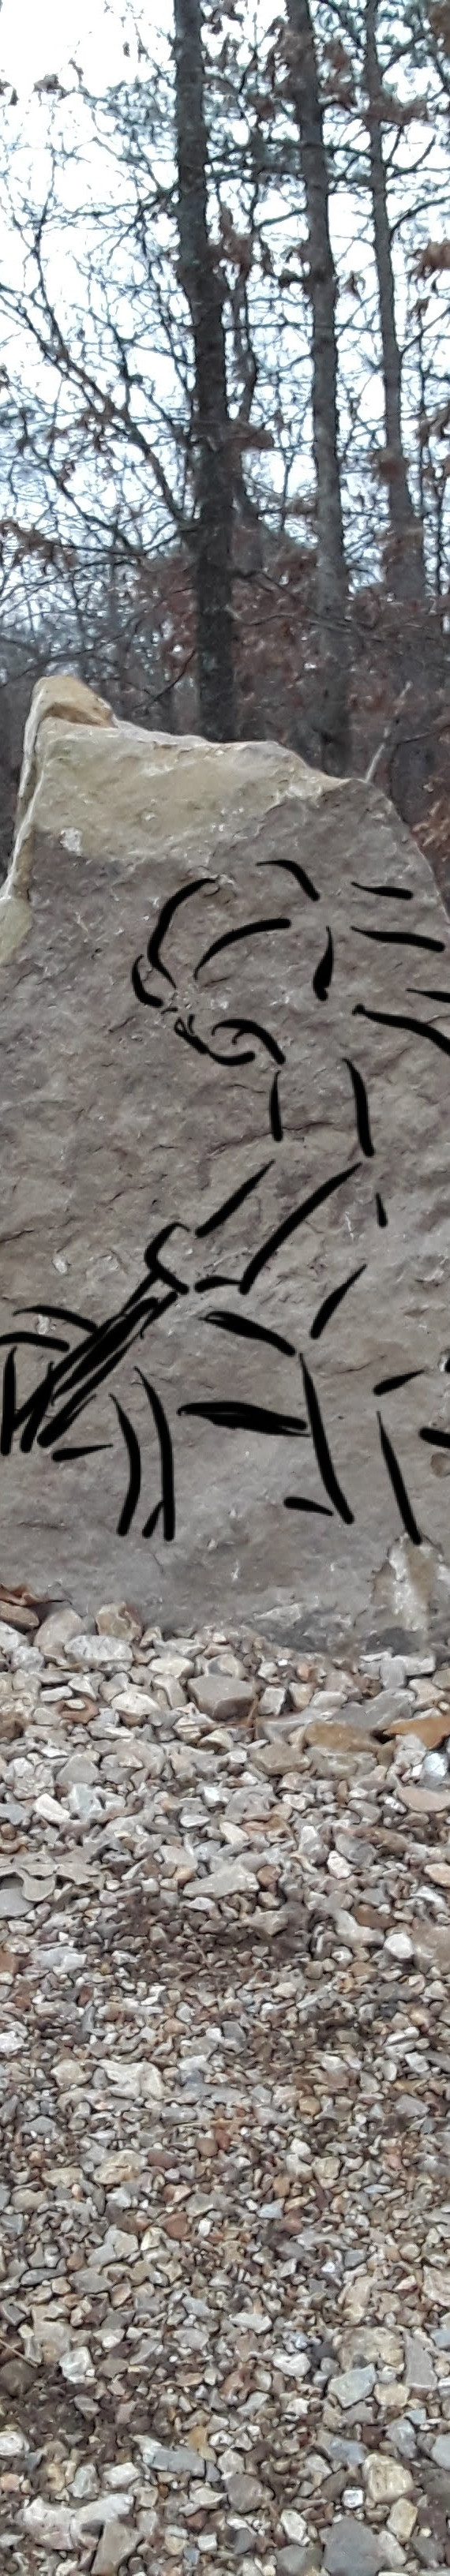 Concept drawing on rock